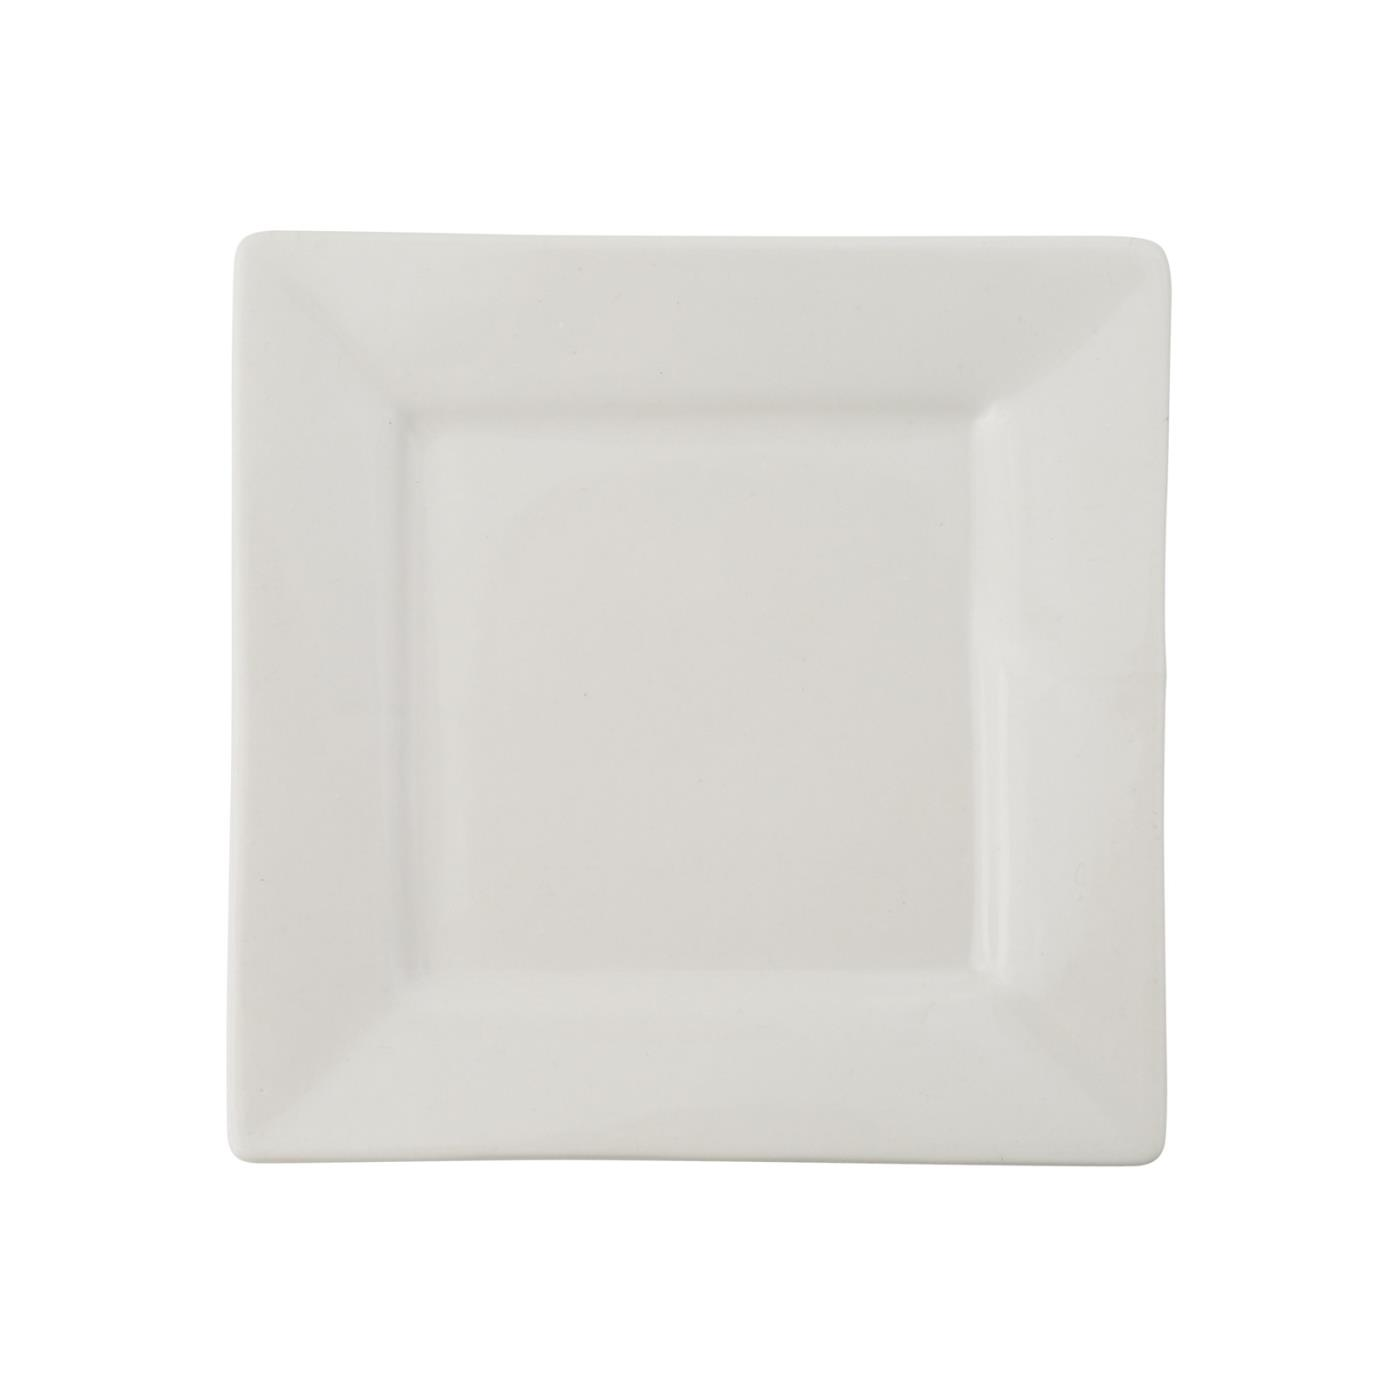 White Square Collection -  B&B Plate 6.5""